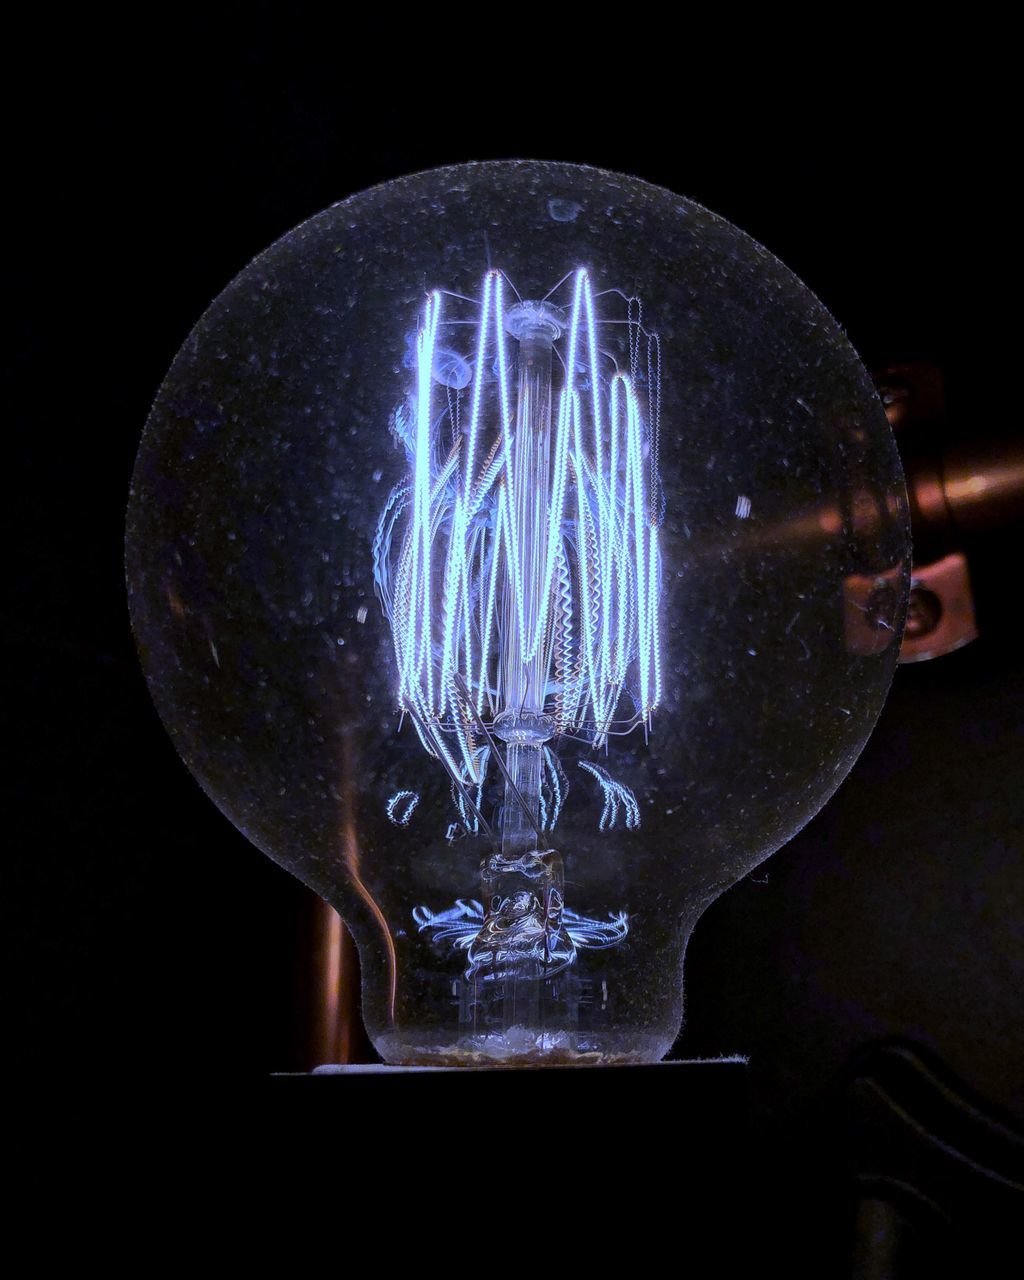 light bulb, illuminated, electricity, lighting equipment, transparent, close-up, filament, indoors, electric light, no people, black background, light, technology, glass - material, glowing, studio shot, single object, fuel and power generation, dark, light - natural phenomenon, electrical equipment, power supply, electric lamp